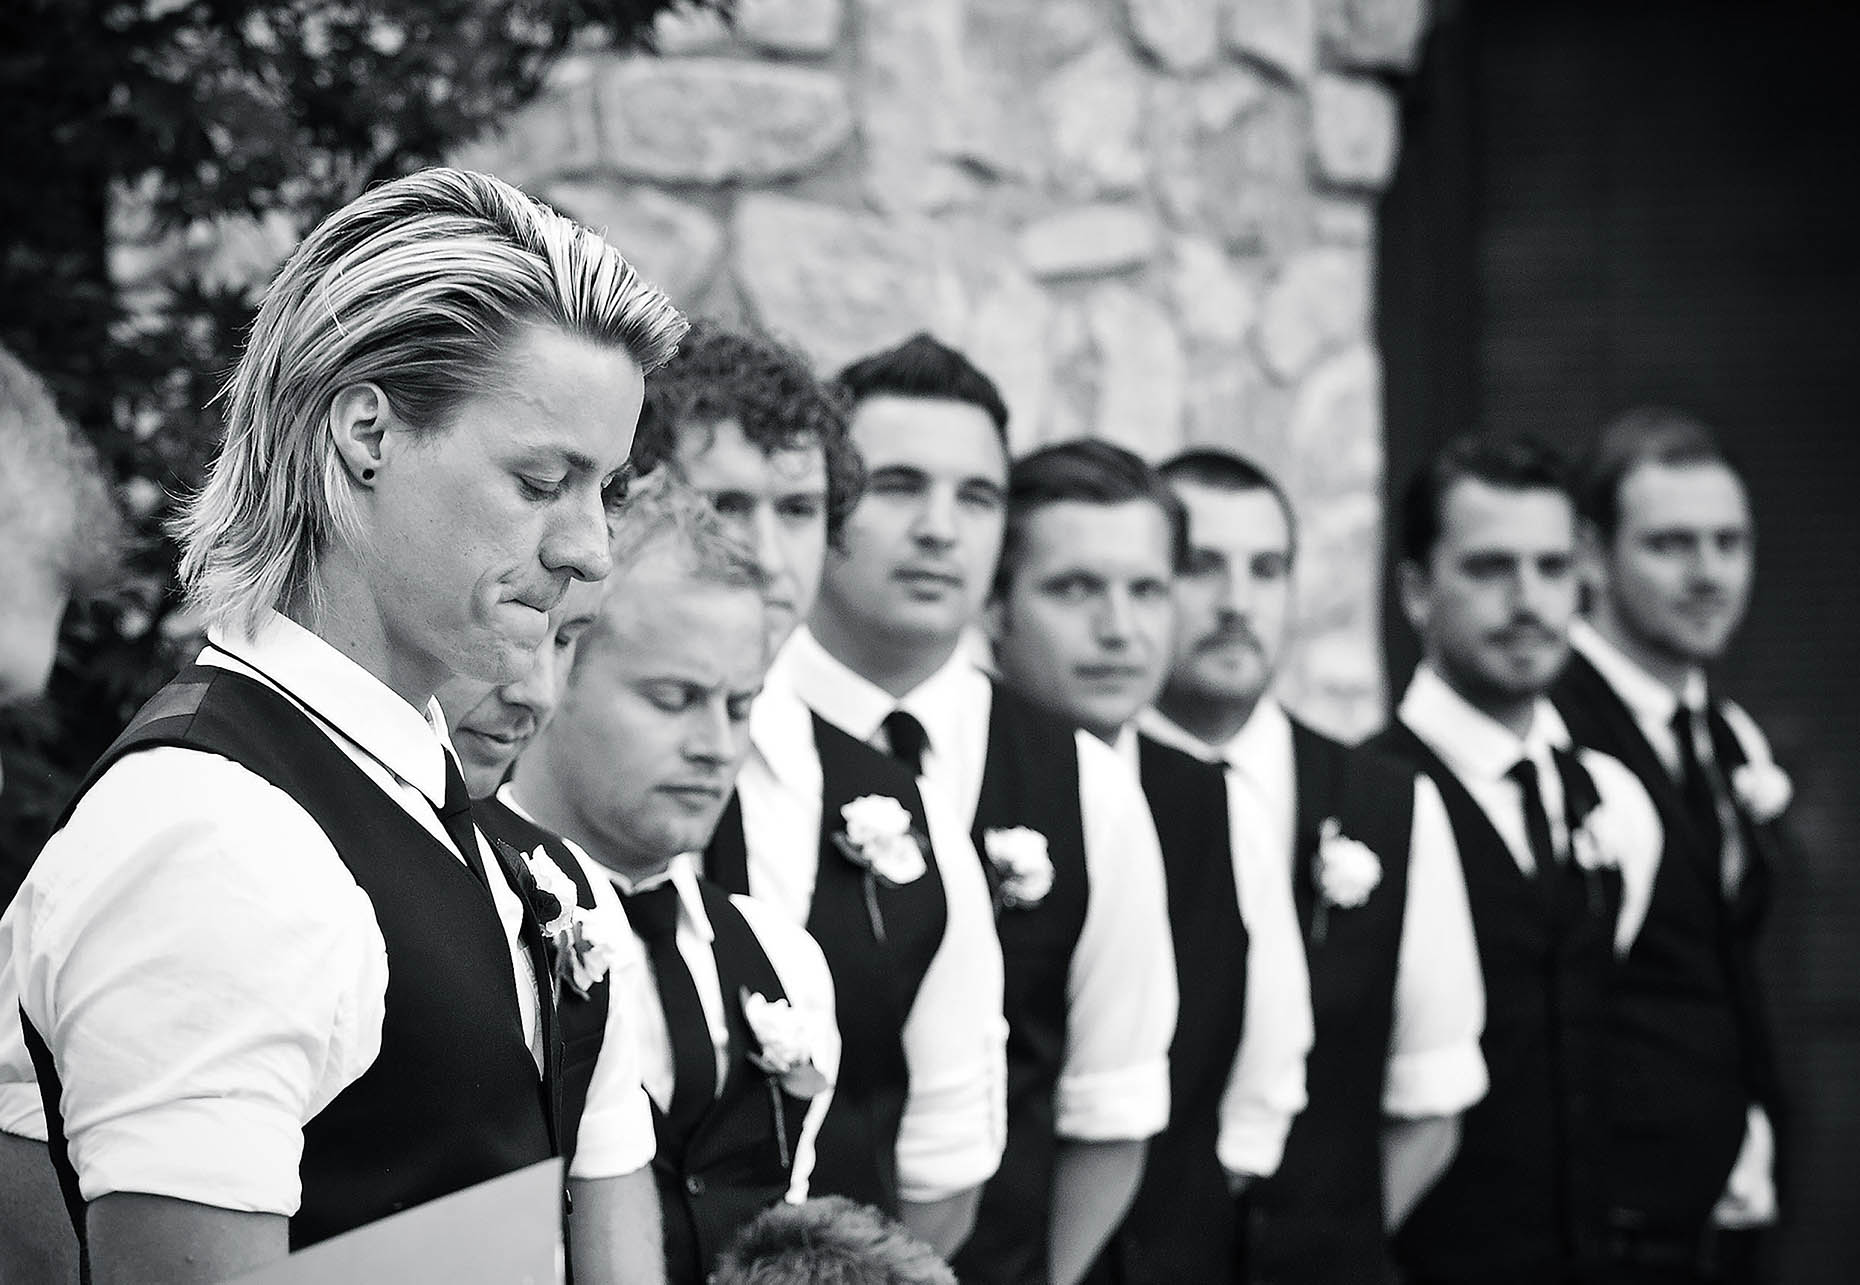 men-groom-ushers-line-ceremony-branson-missouri-weddings-black-white-07